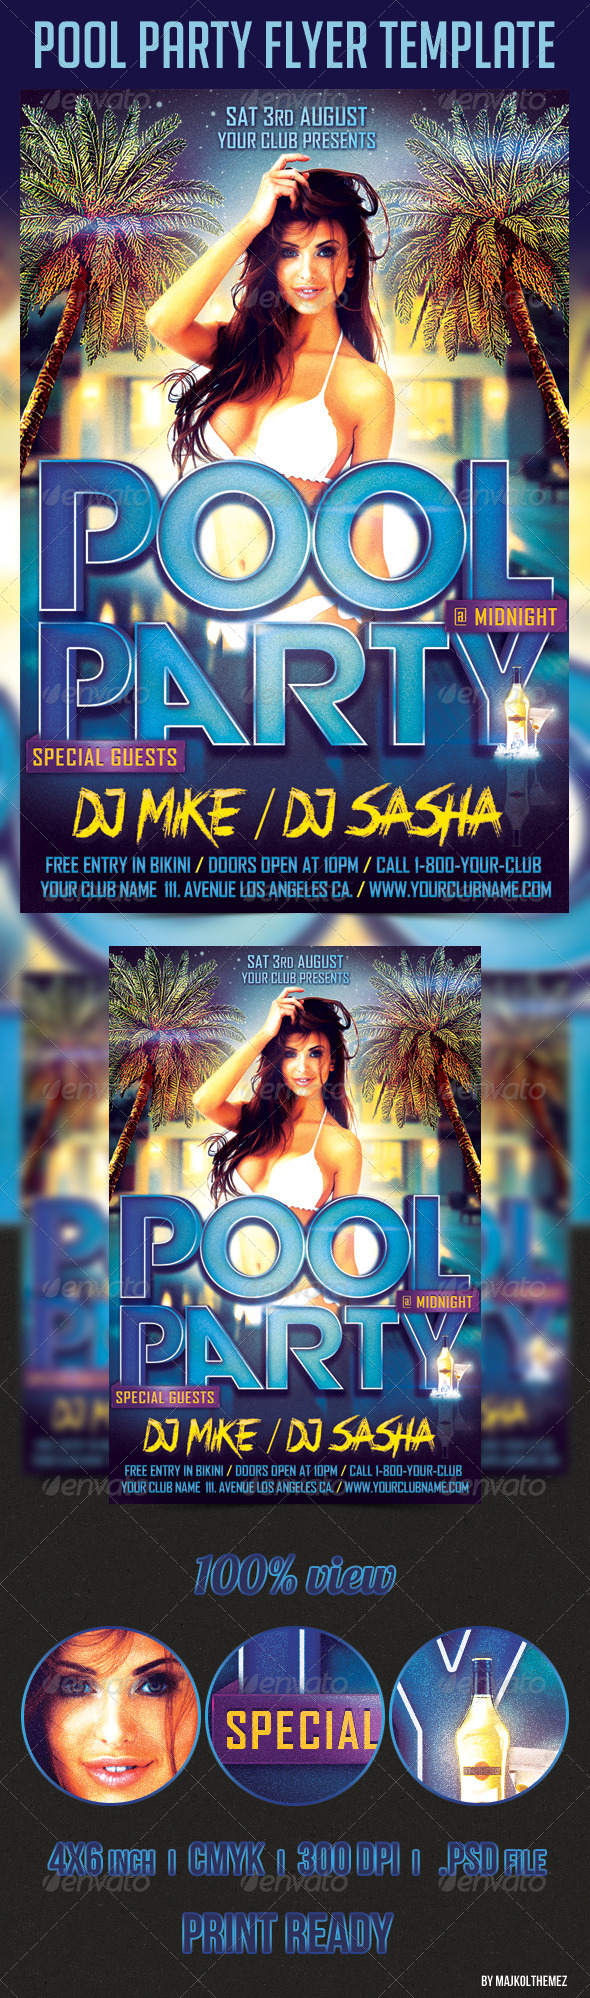 Pool Party Flyer Template - Clubs & Parties Events